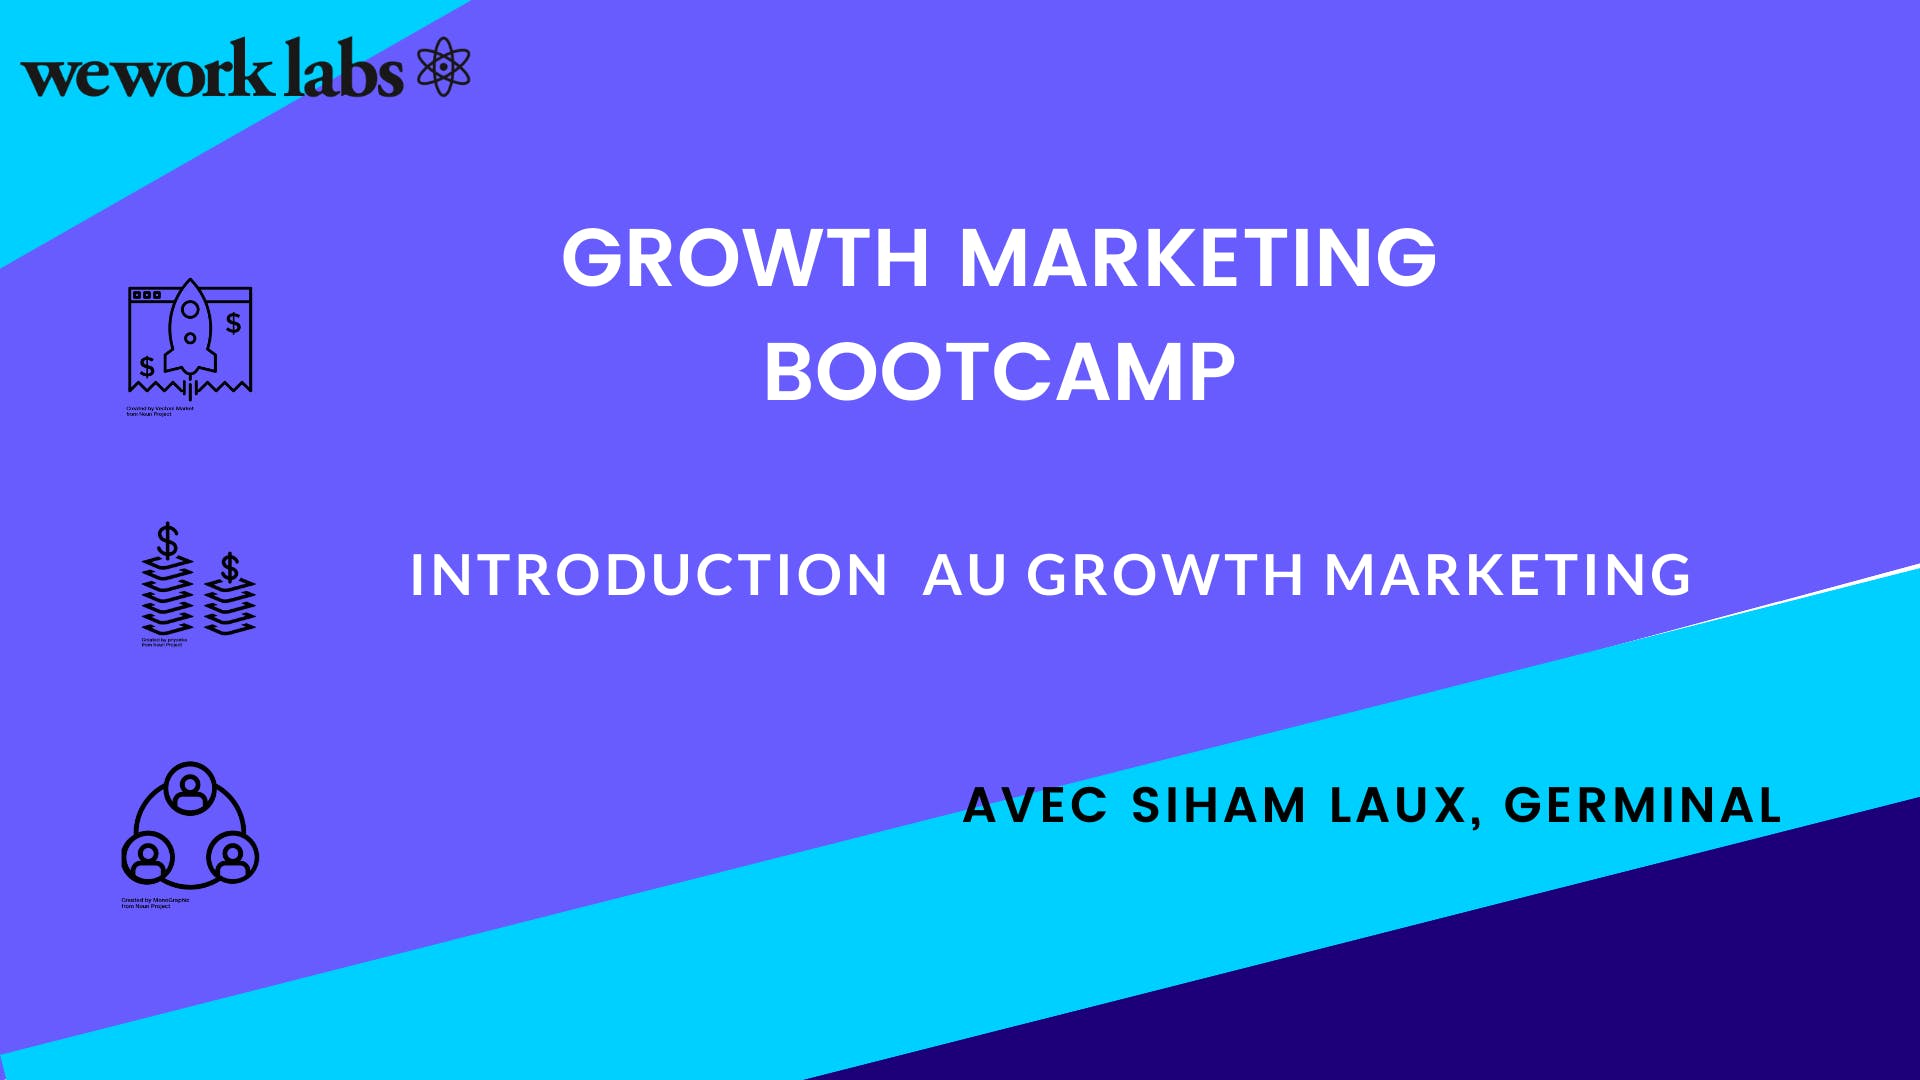 Growth Marketing Bootcamp - Intro au Growth Marketing (1/5)